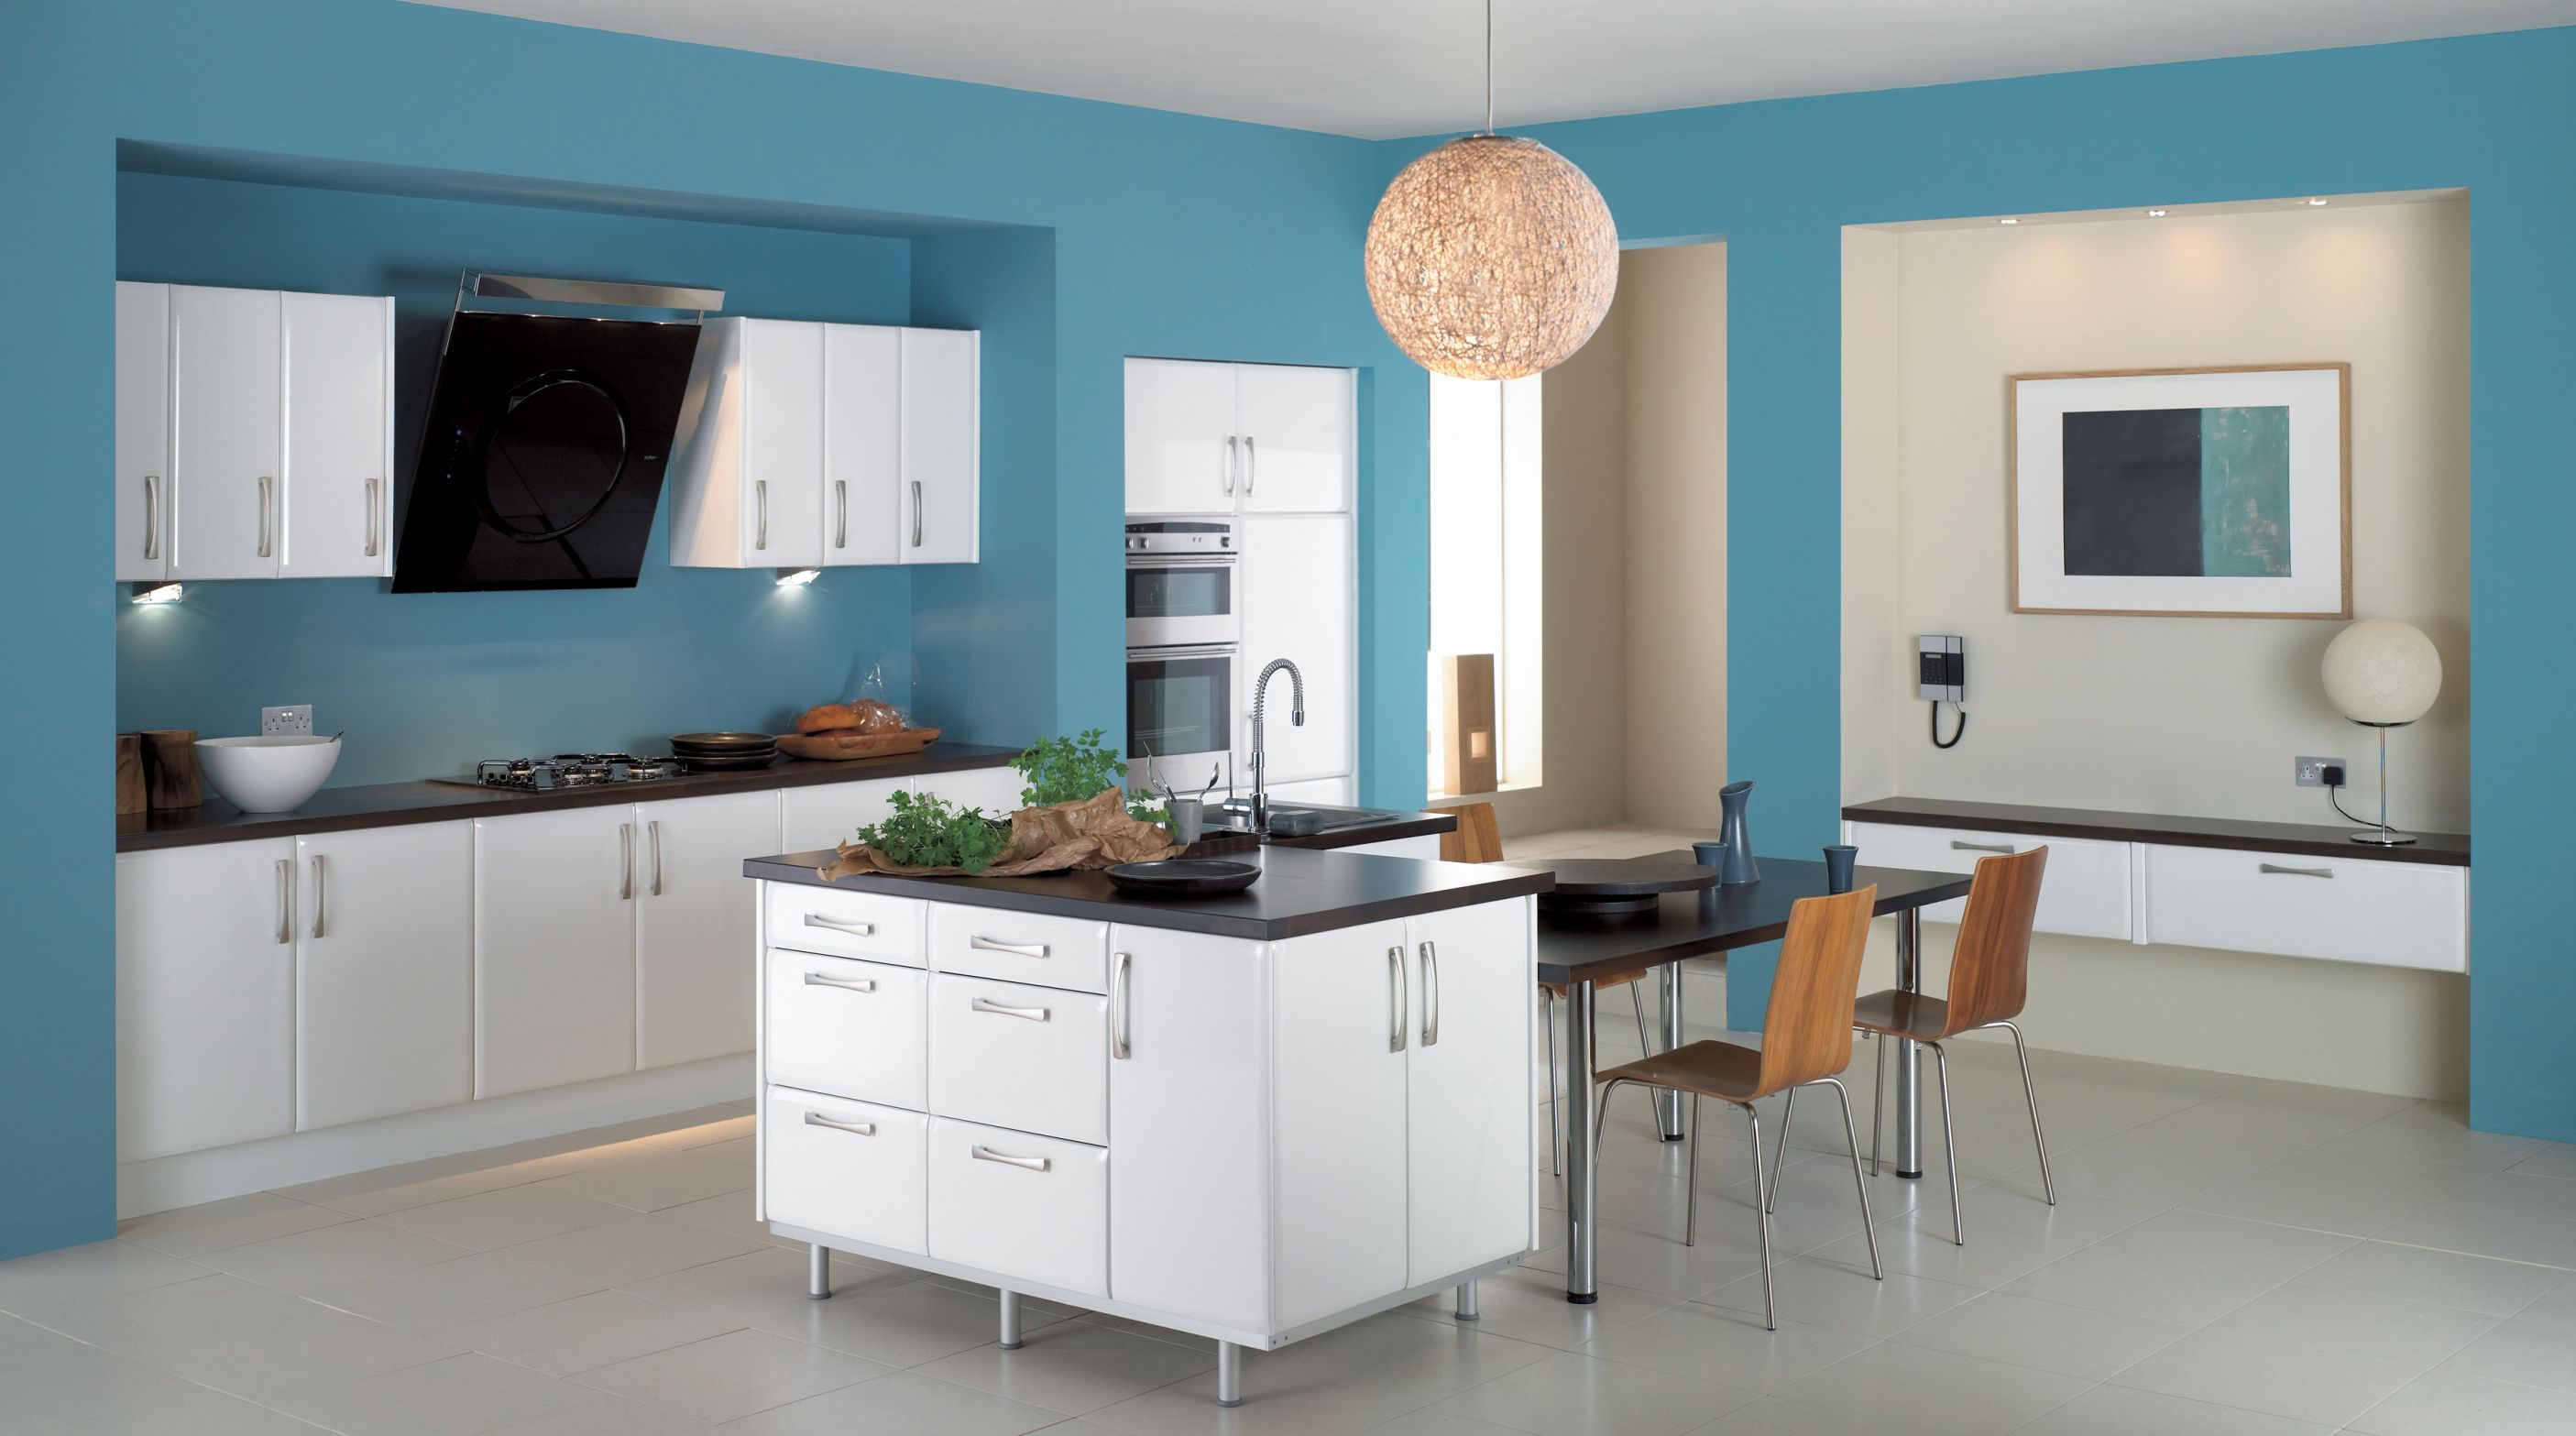 Uncategorized Kitchen Color Designs cool colors white kitchen modern with blue color design tangine kitchen